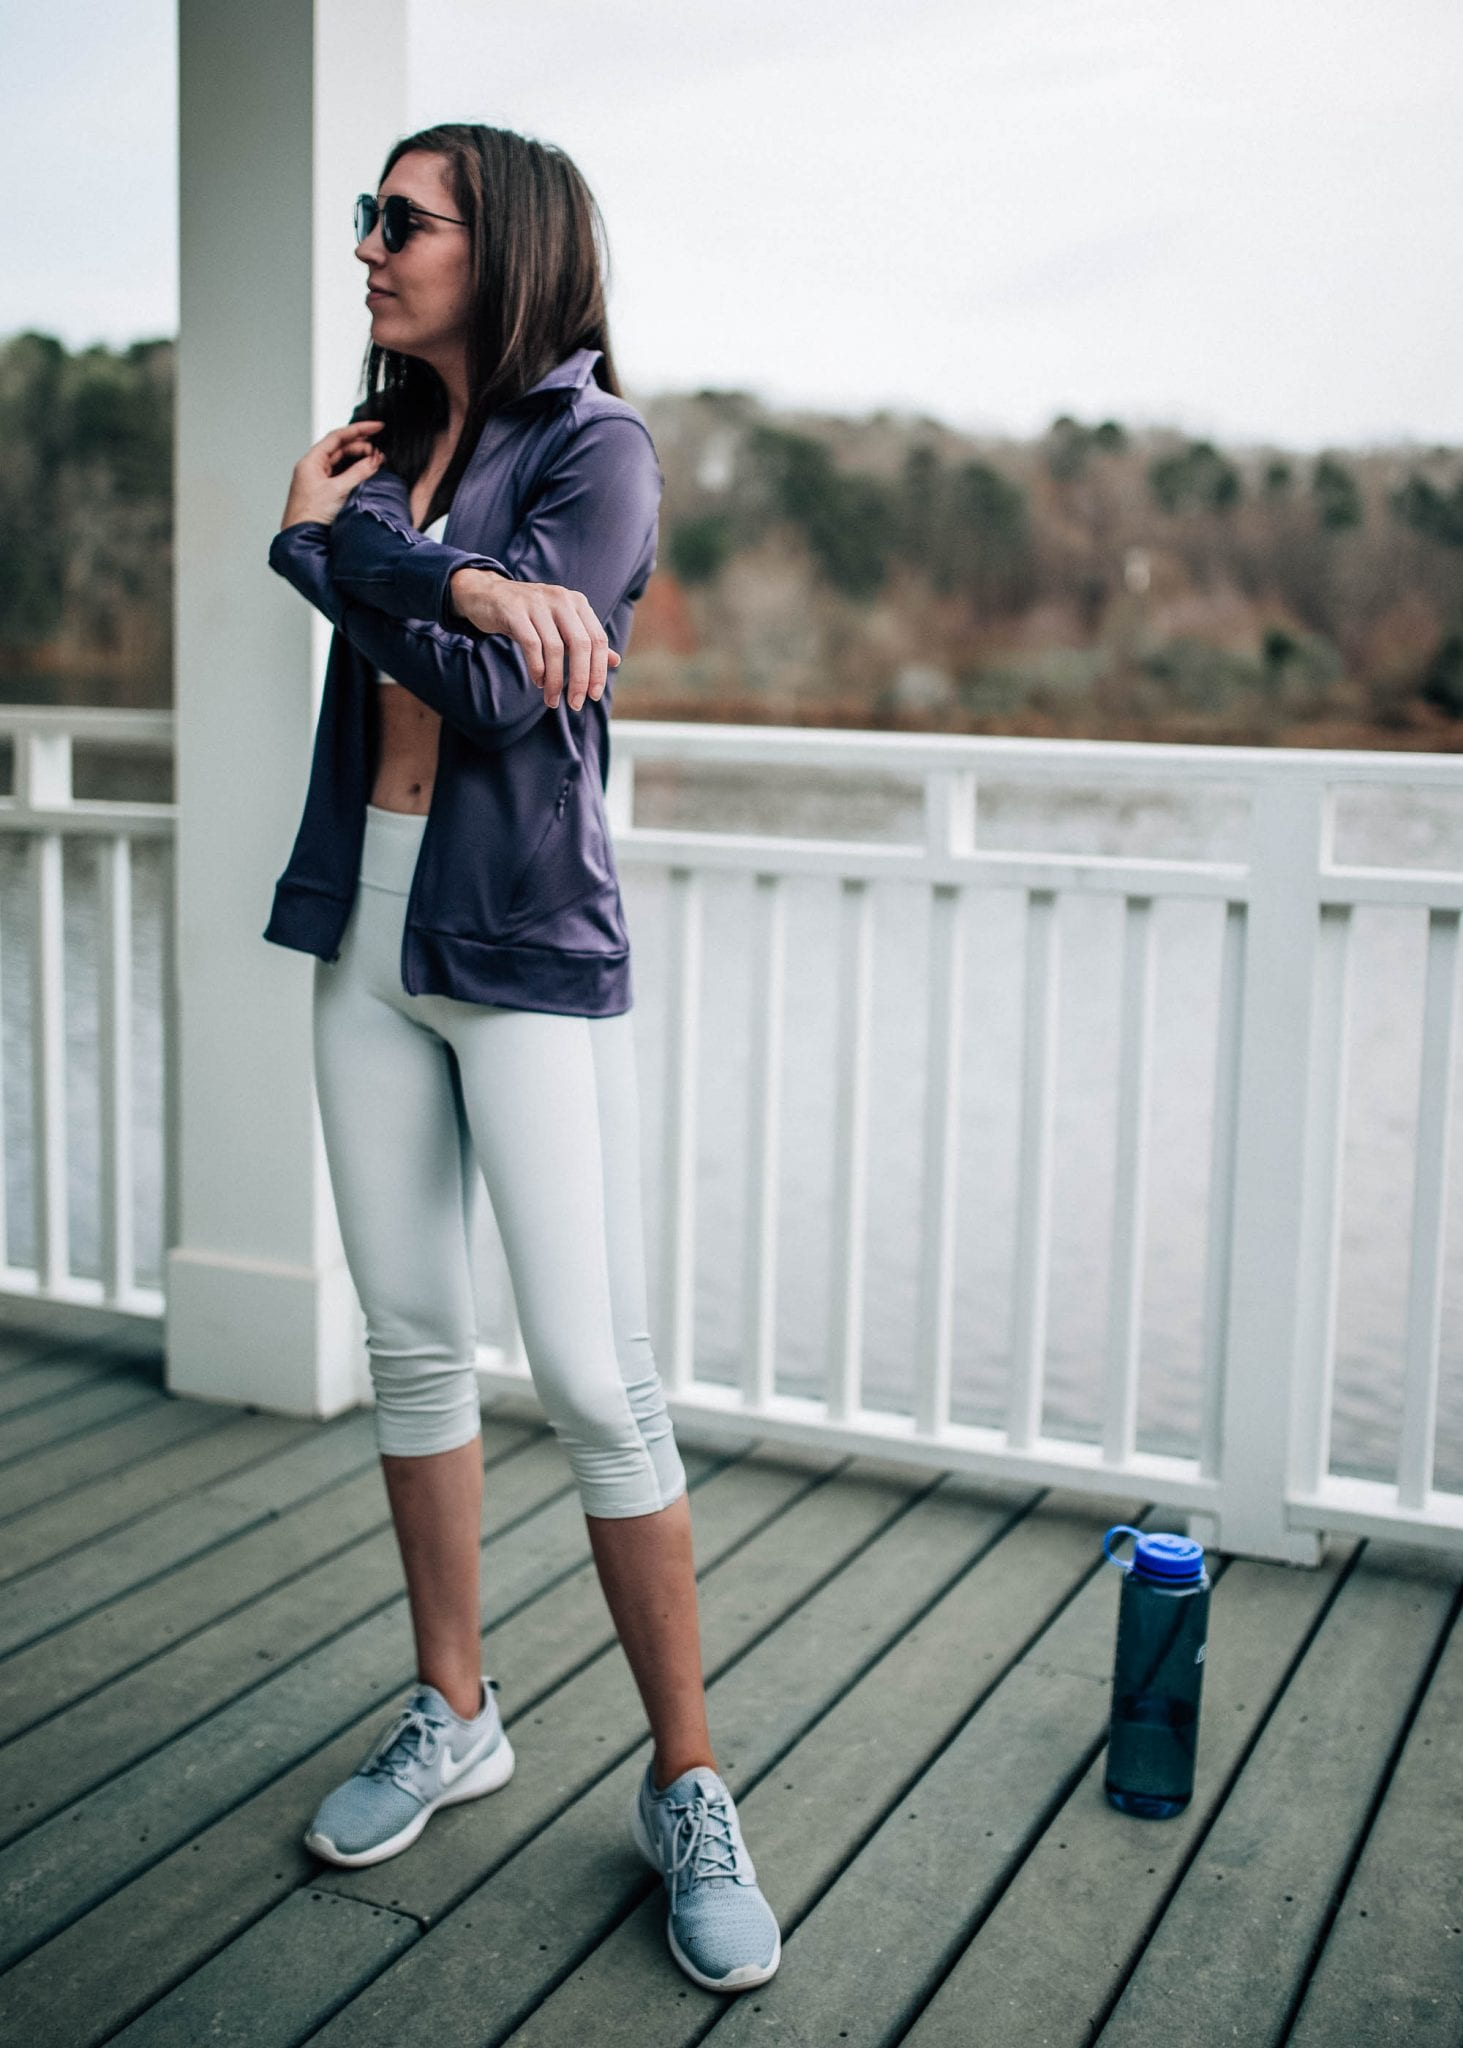 A Budget-Friendly Activewear Brand I'm Loving